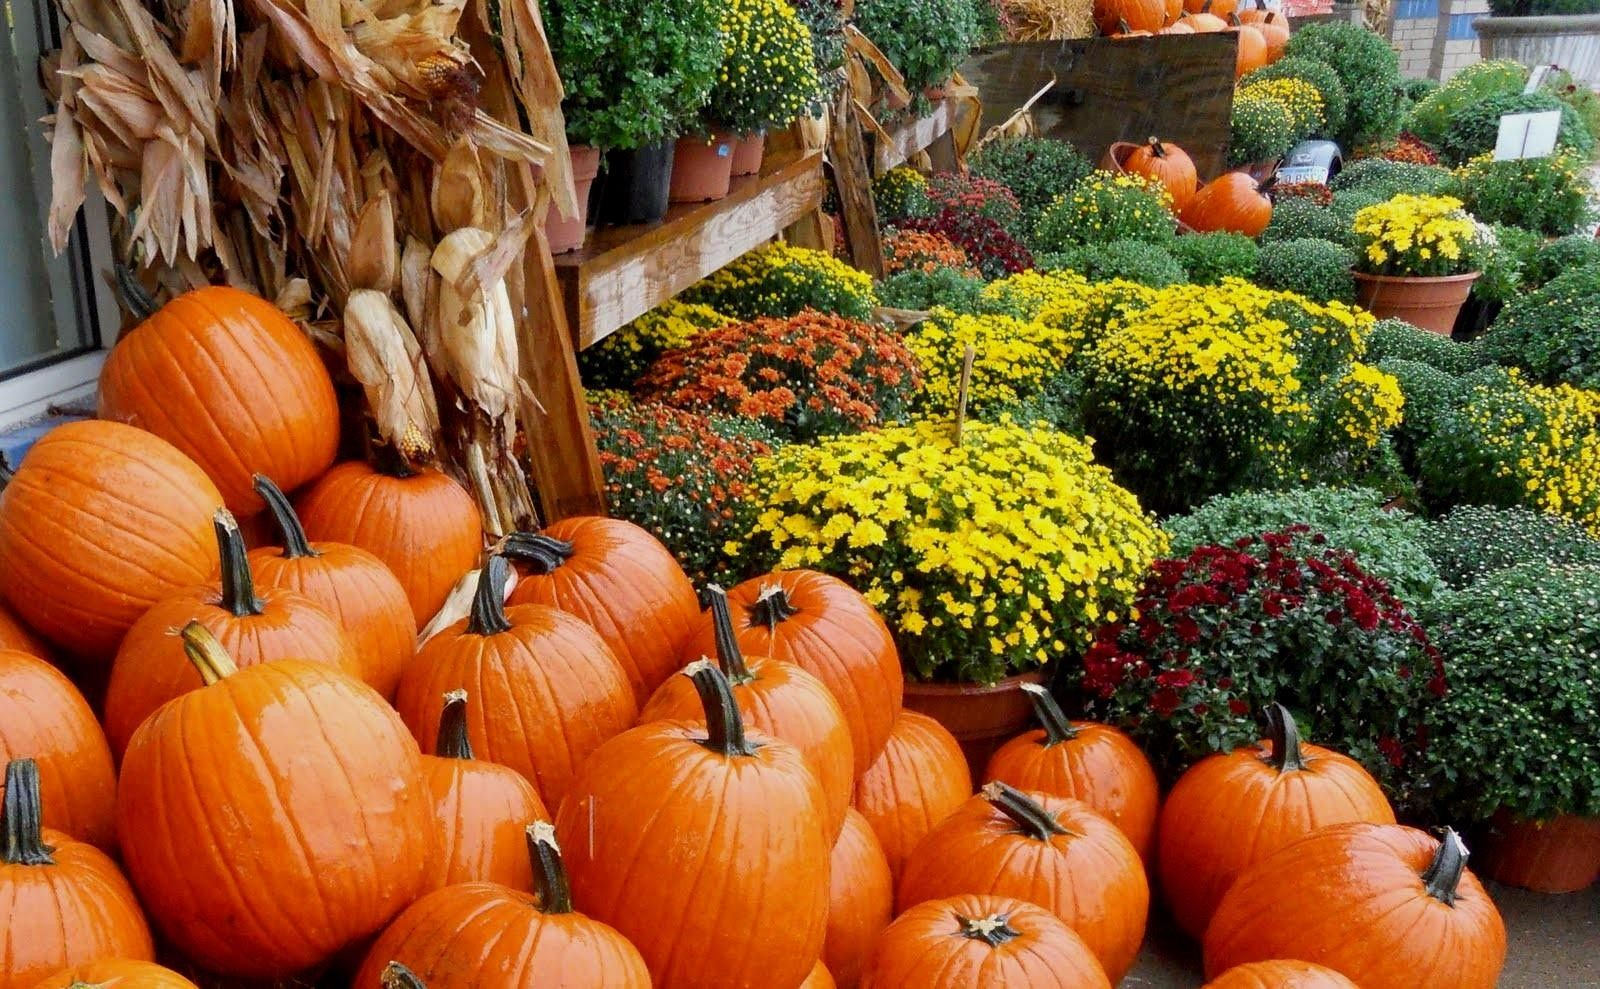 Fall Desktop Wallpapers with Pumpkins Wallpapers For